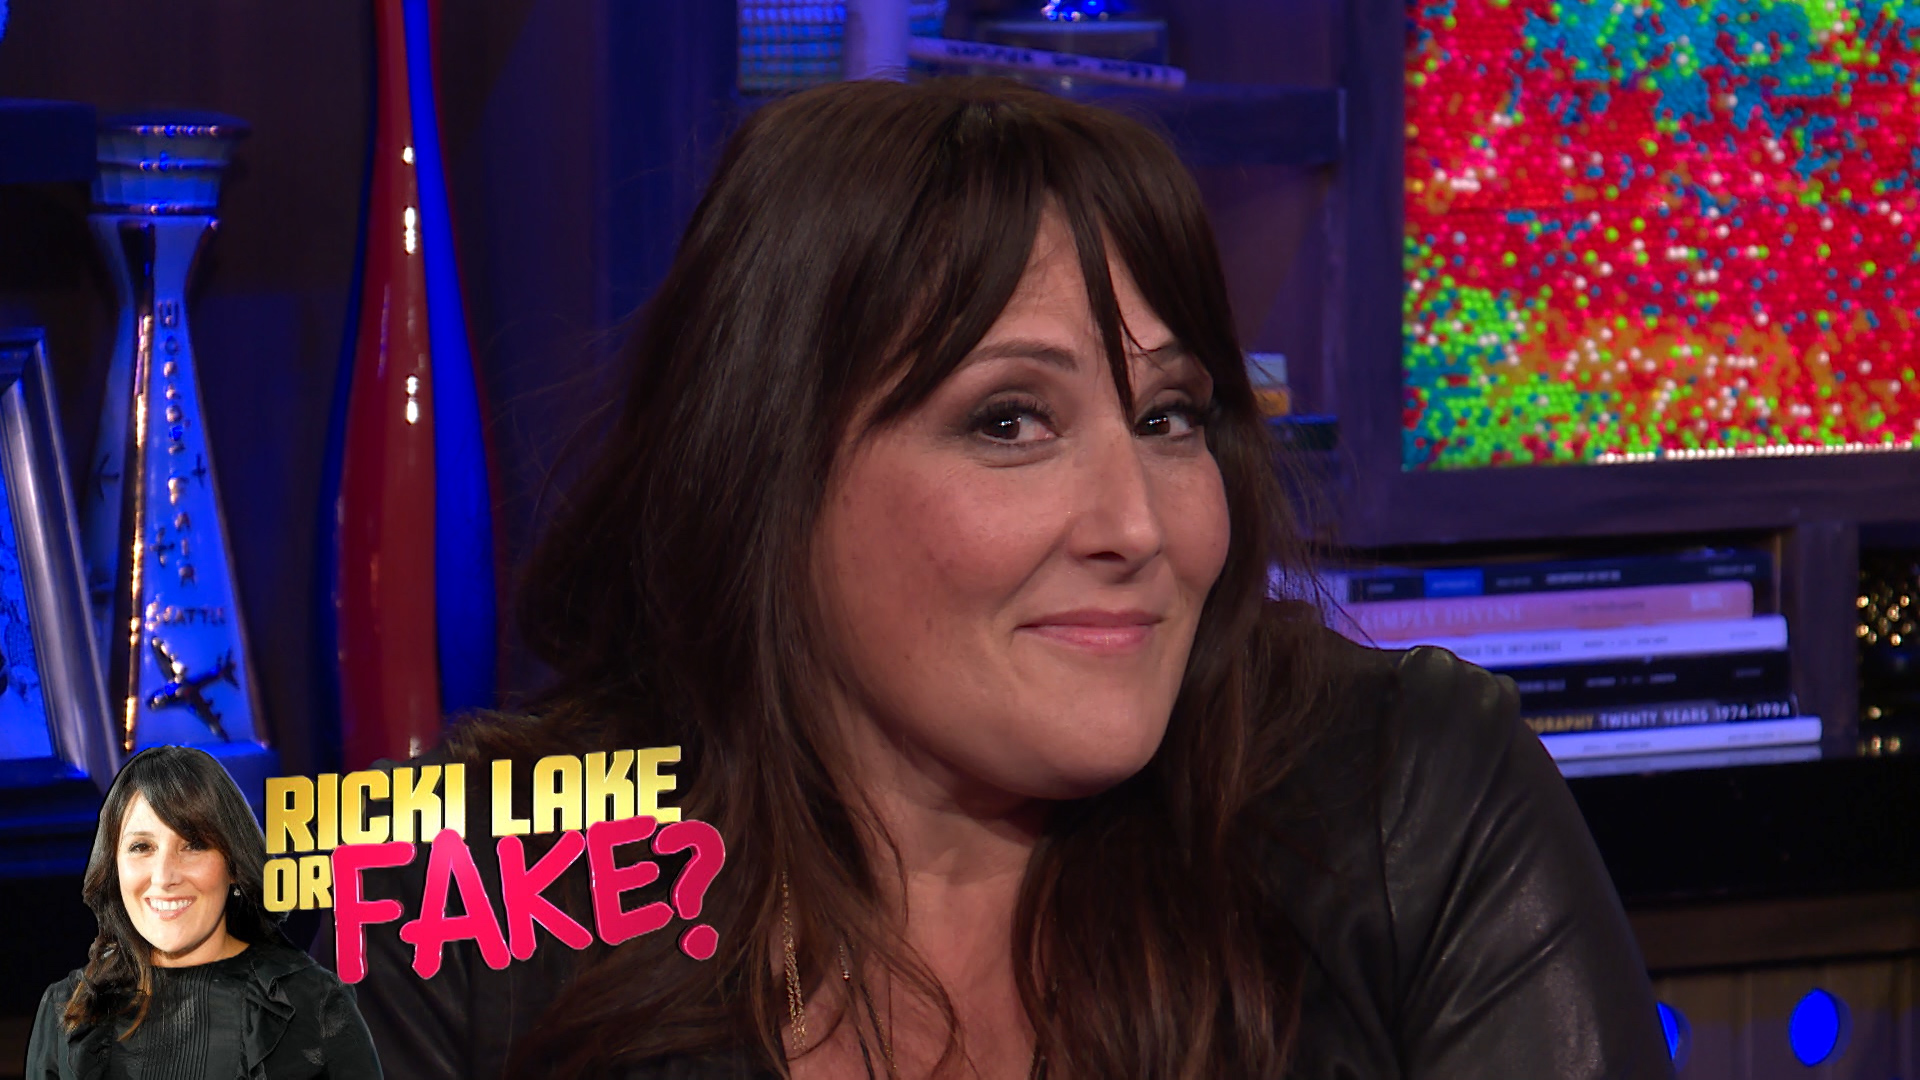 How Many Times has Ricki Lake had Ayahuasca?